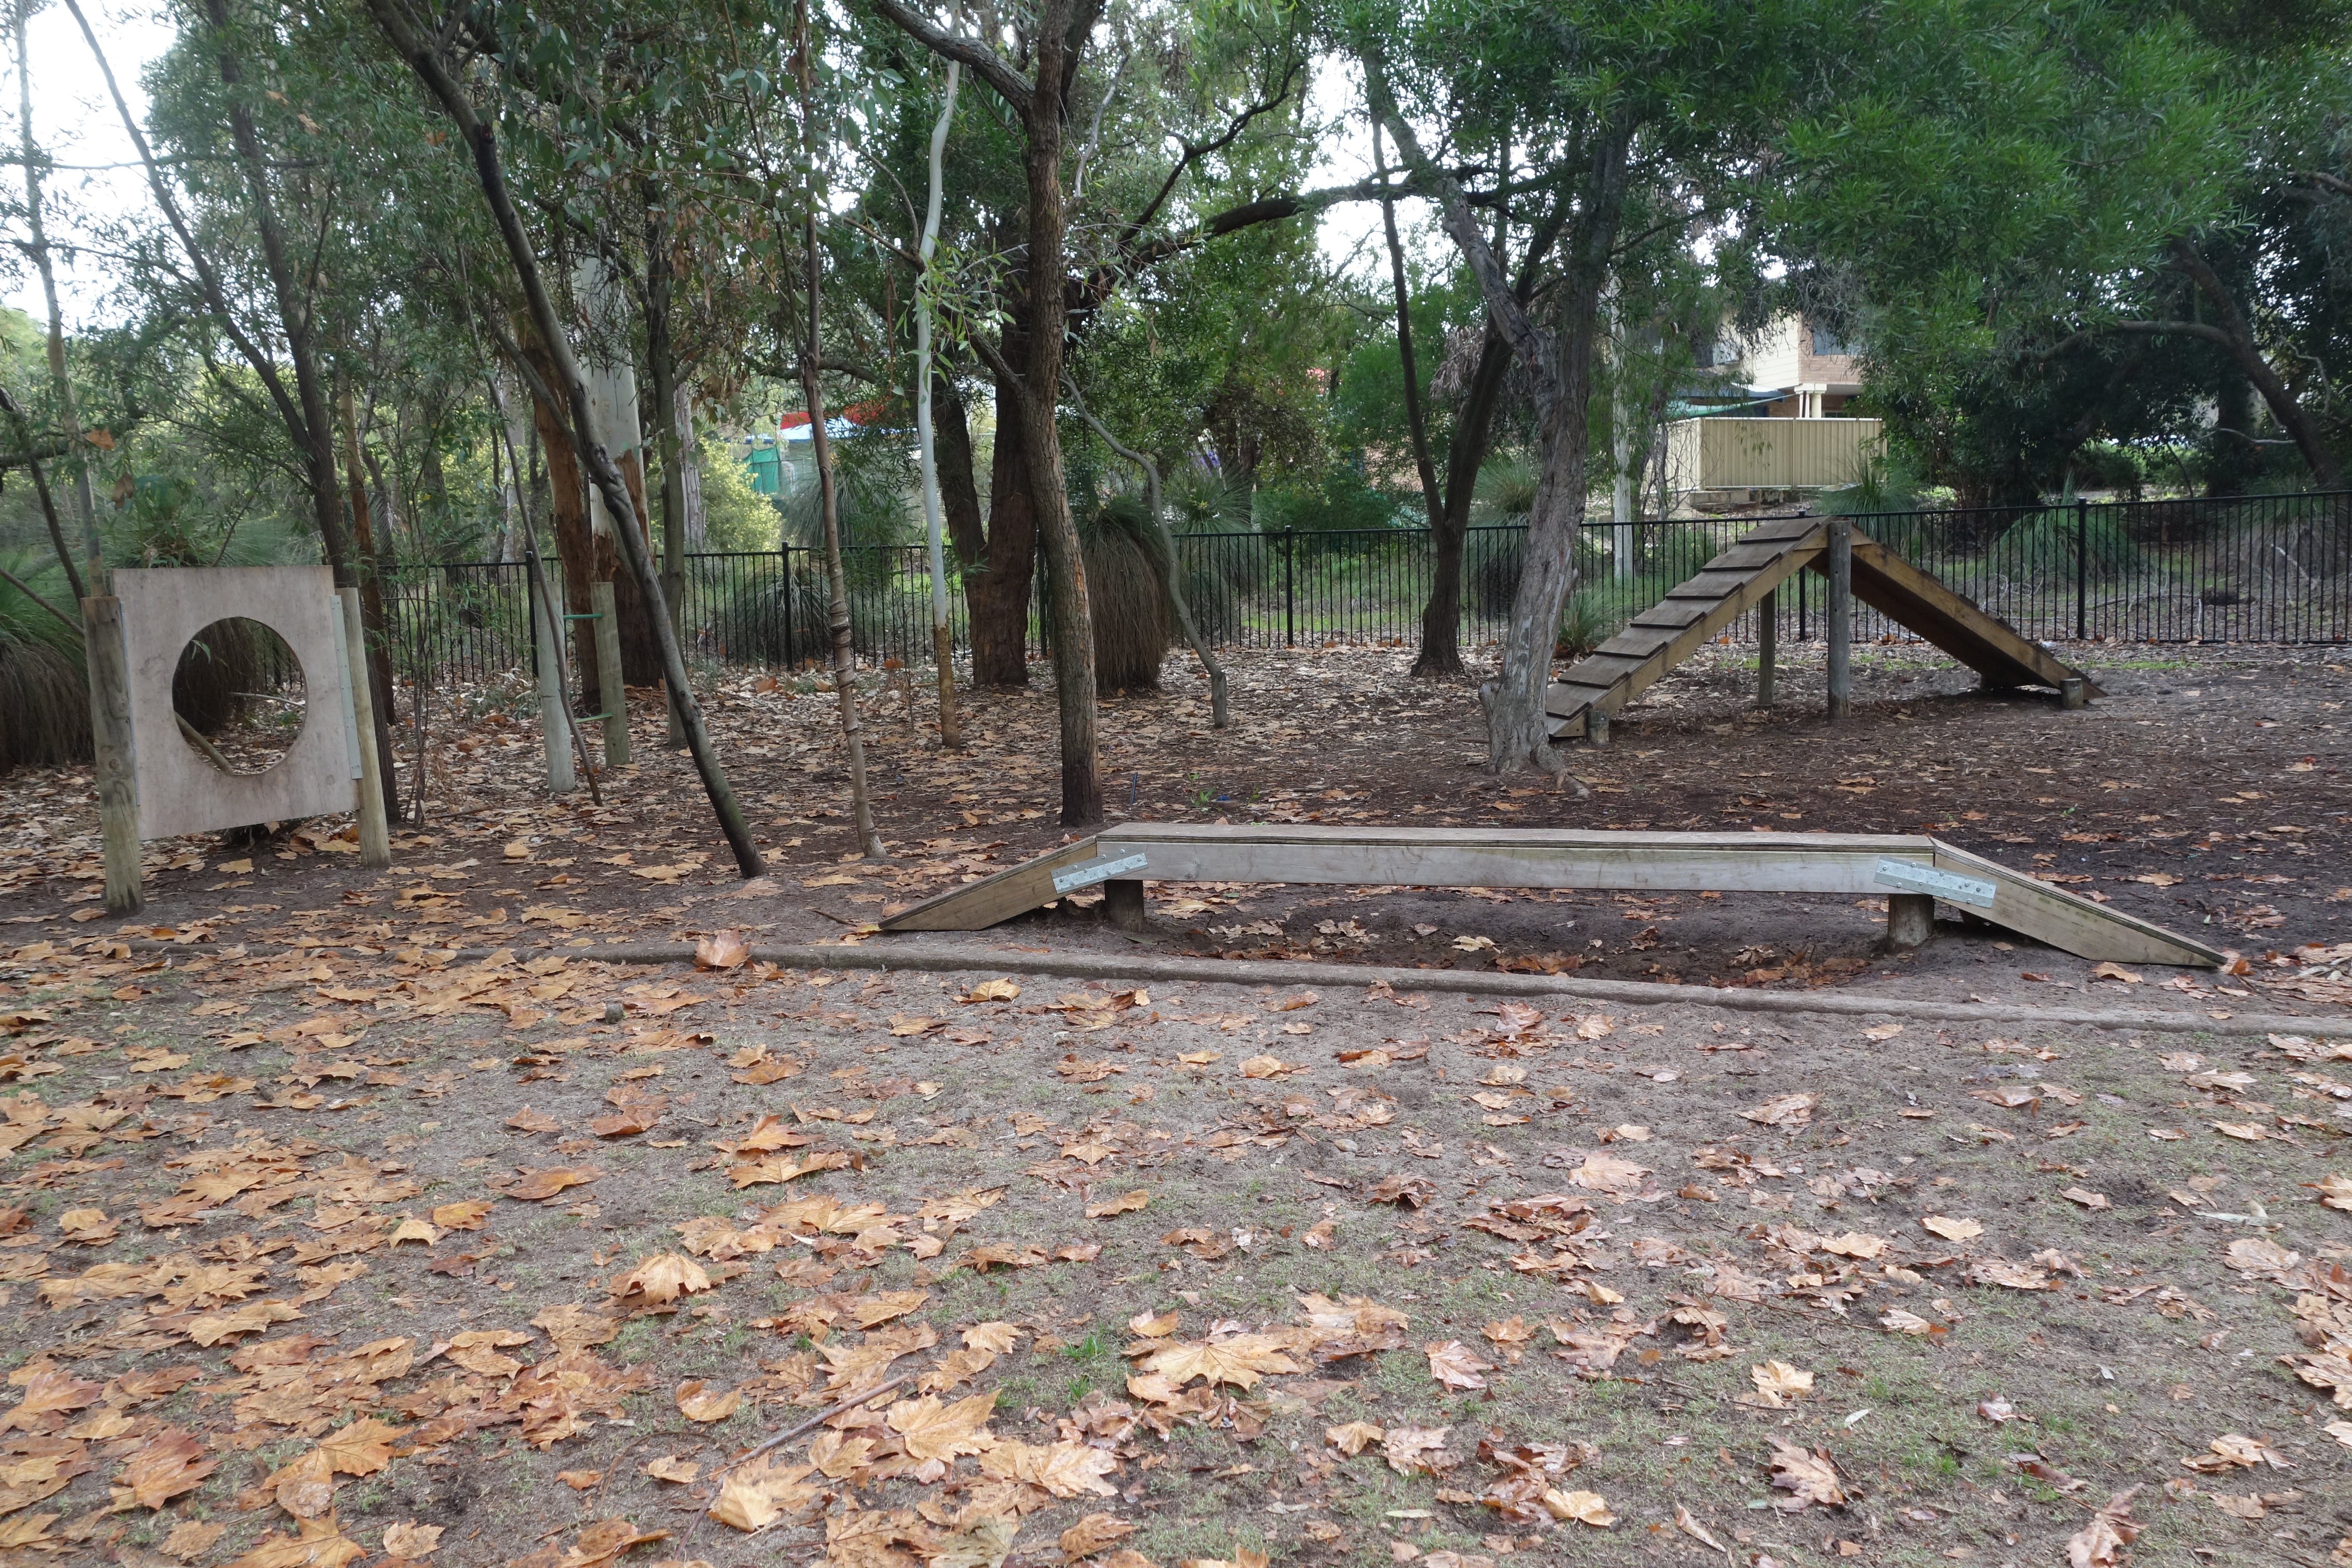 Example of Agility 'dog obstacle course' equipment